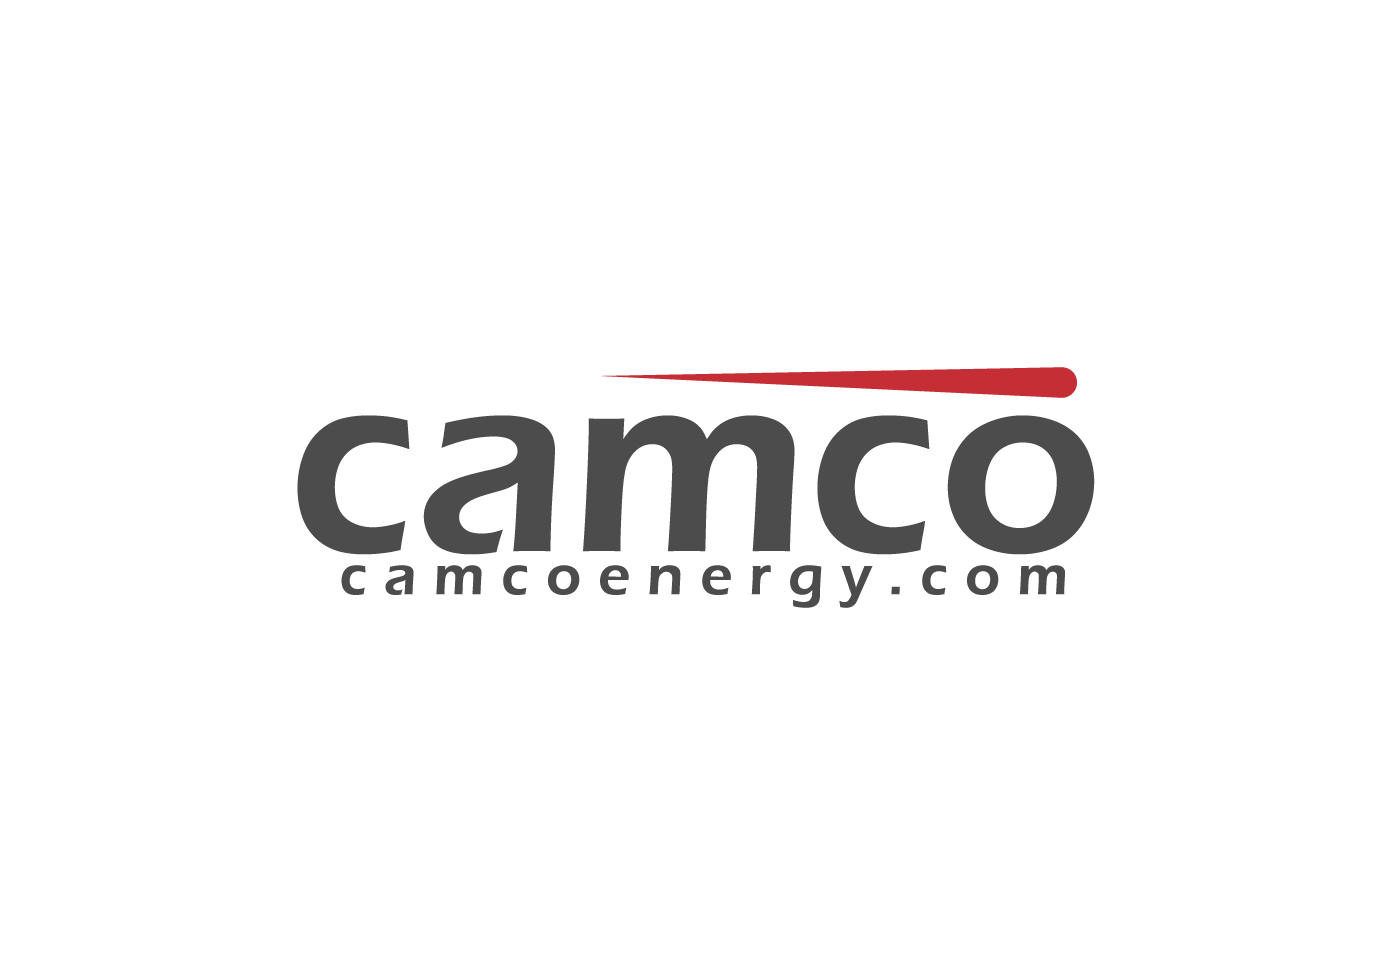 Camco Energy